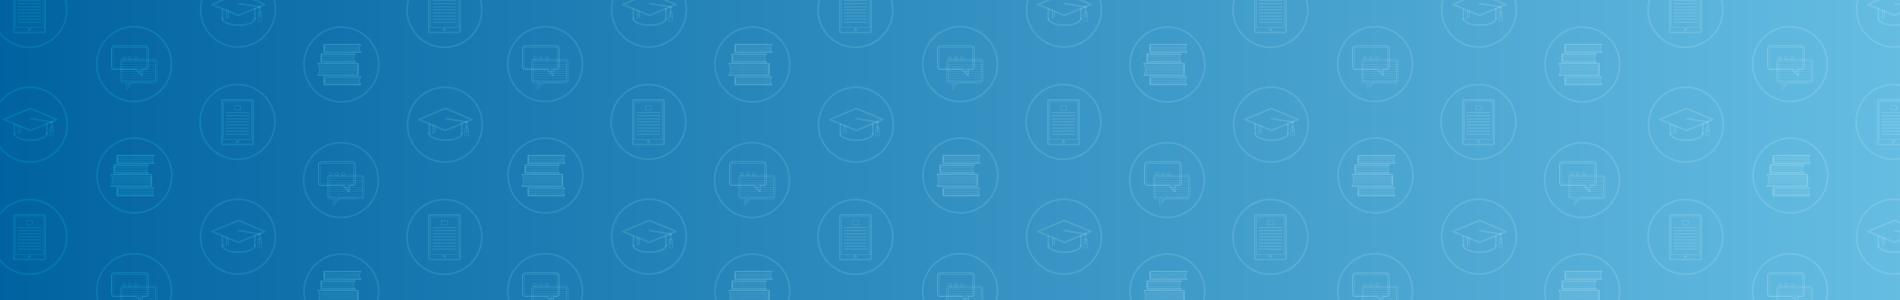 OverDrive Resource Center: Managing Content Access Levels (K-12 Schools)